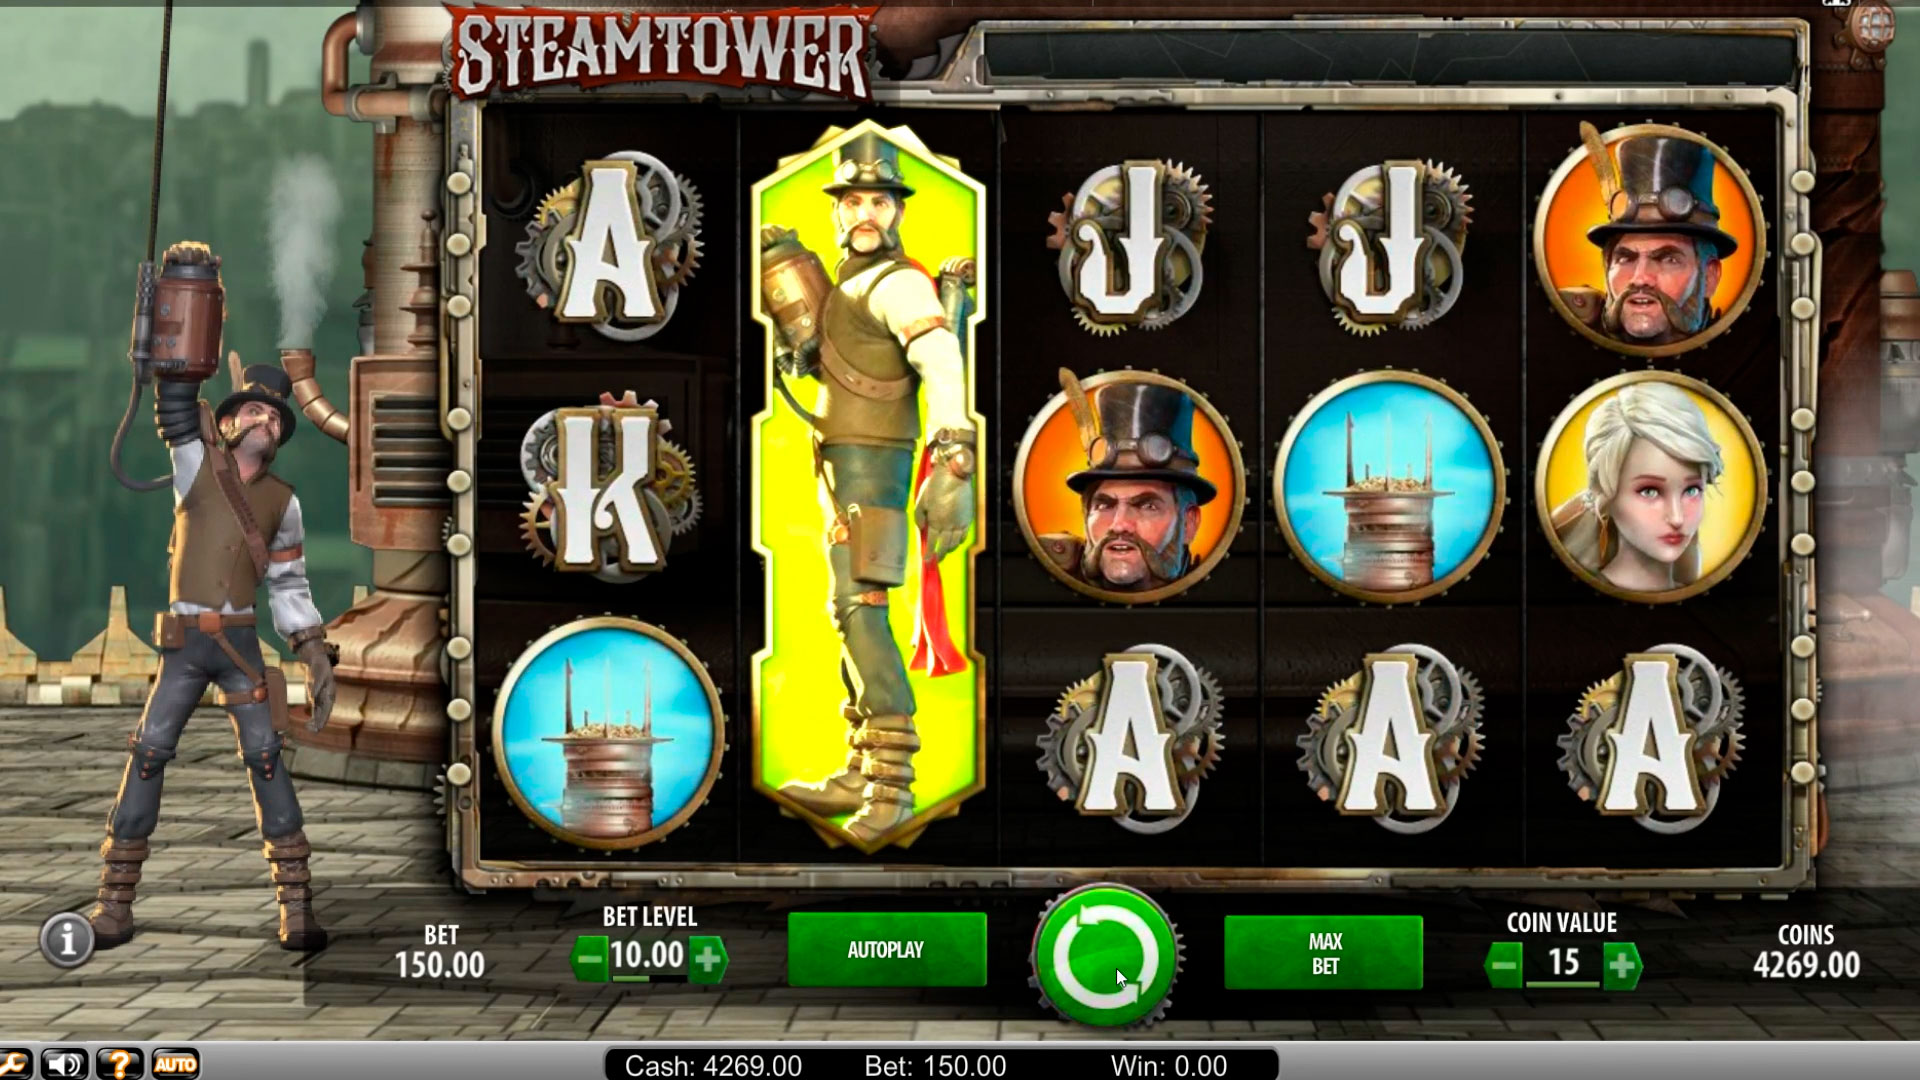 Slot casinò Steam tower grande vittoria € 23.000 con gioco bonus!